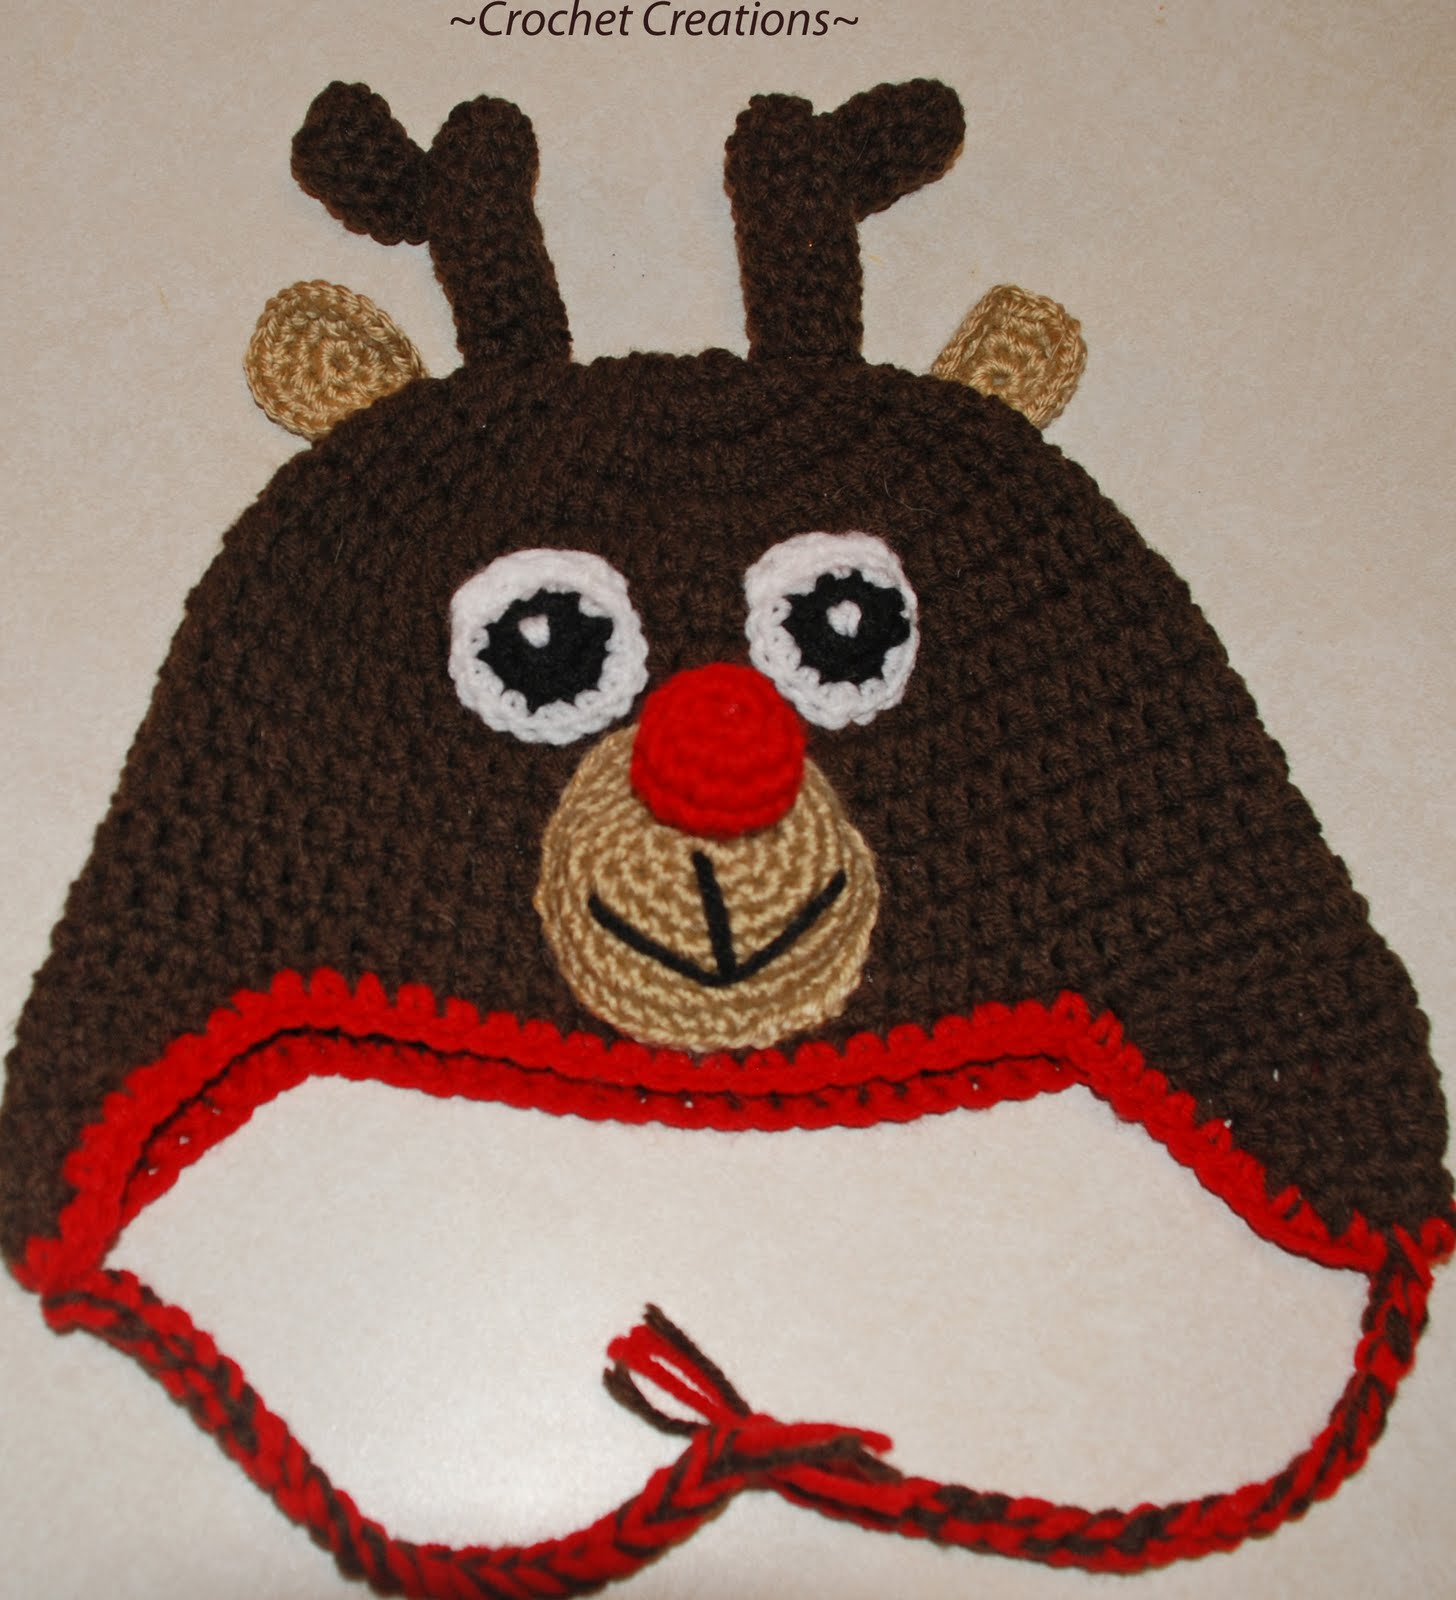 Free Crochet Patterns For Reindeer Hats : FREE CROCHET REINDEER PATTERN Crochet Tutorials